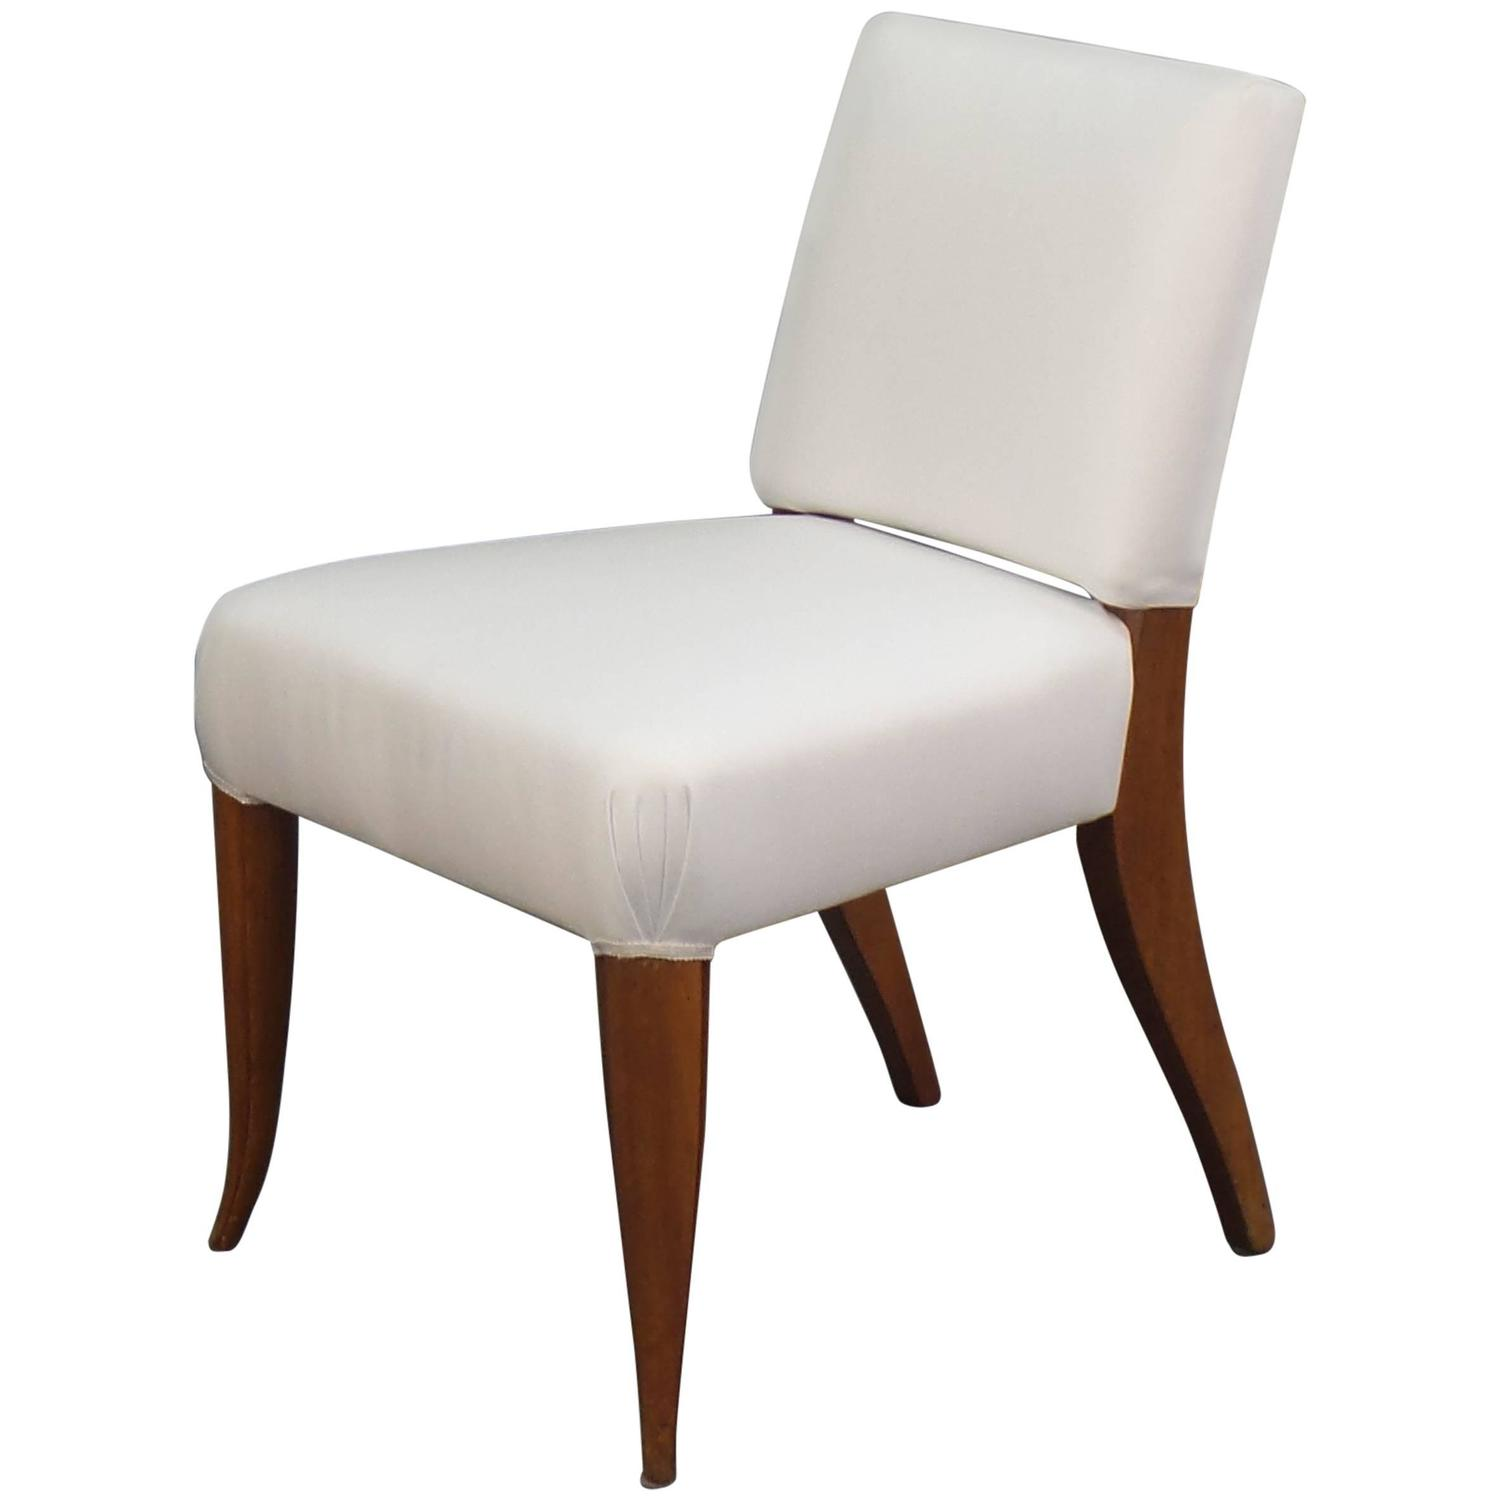 Art Deco Style Dining Chair For Sale At 1stdibs